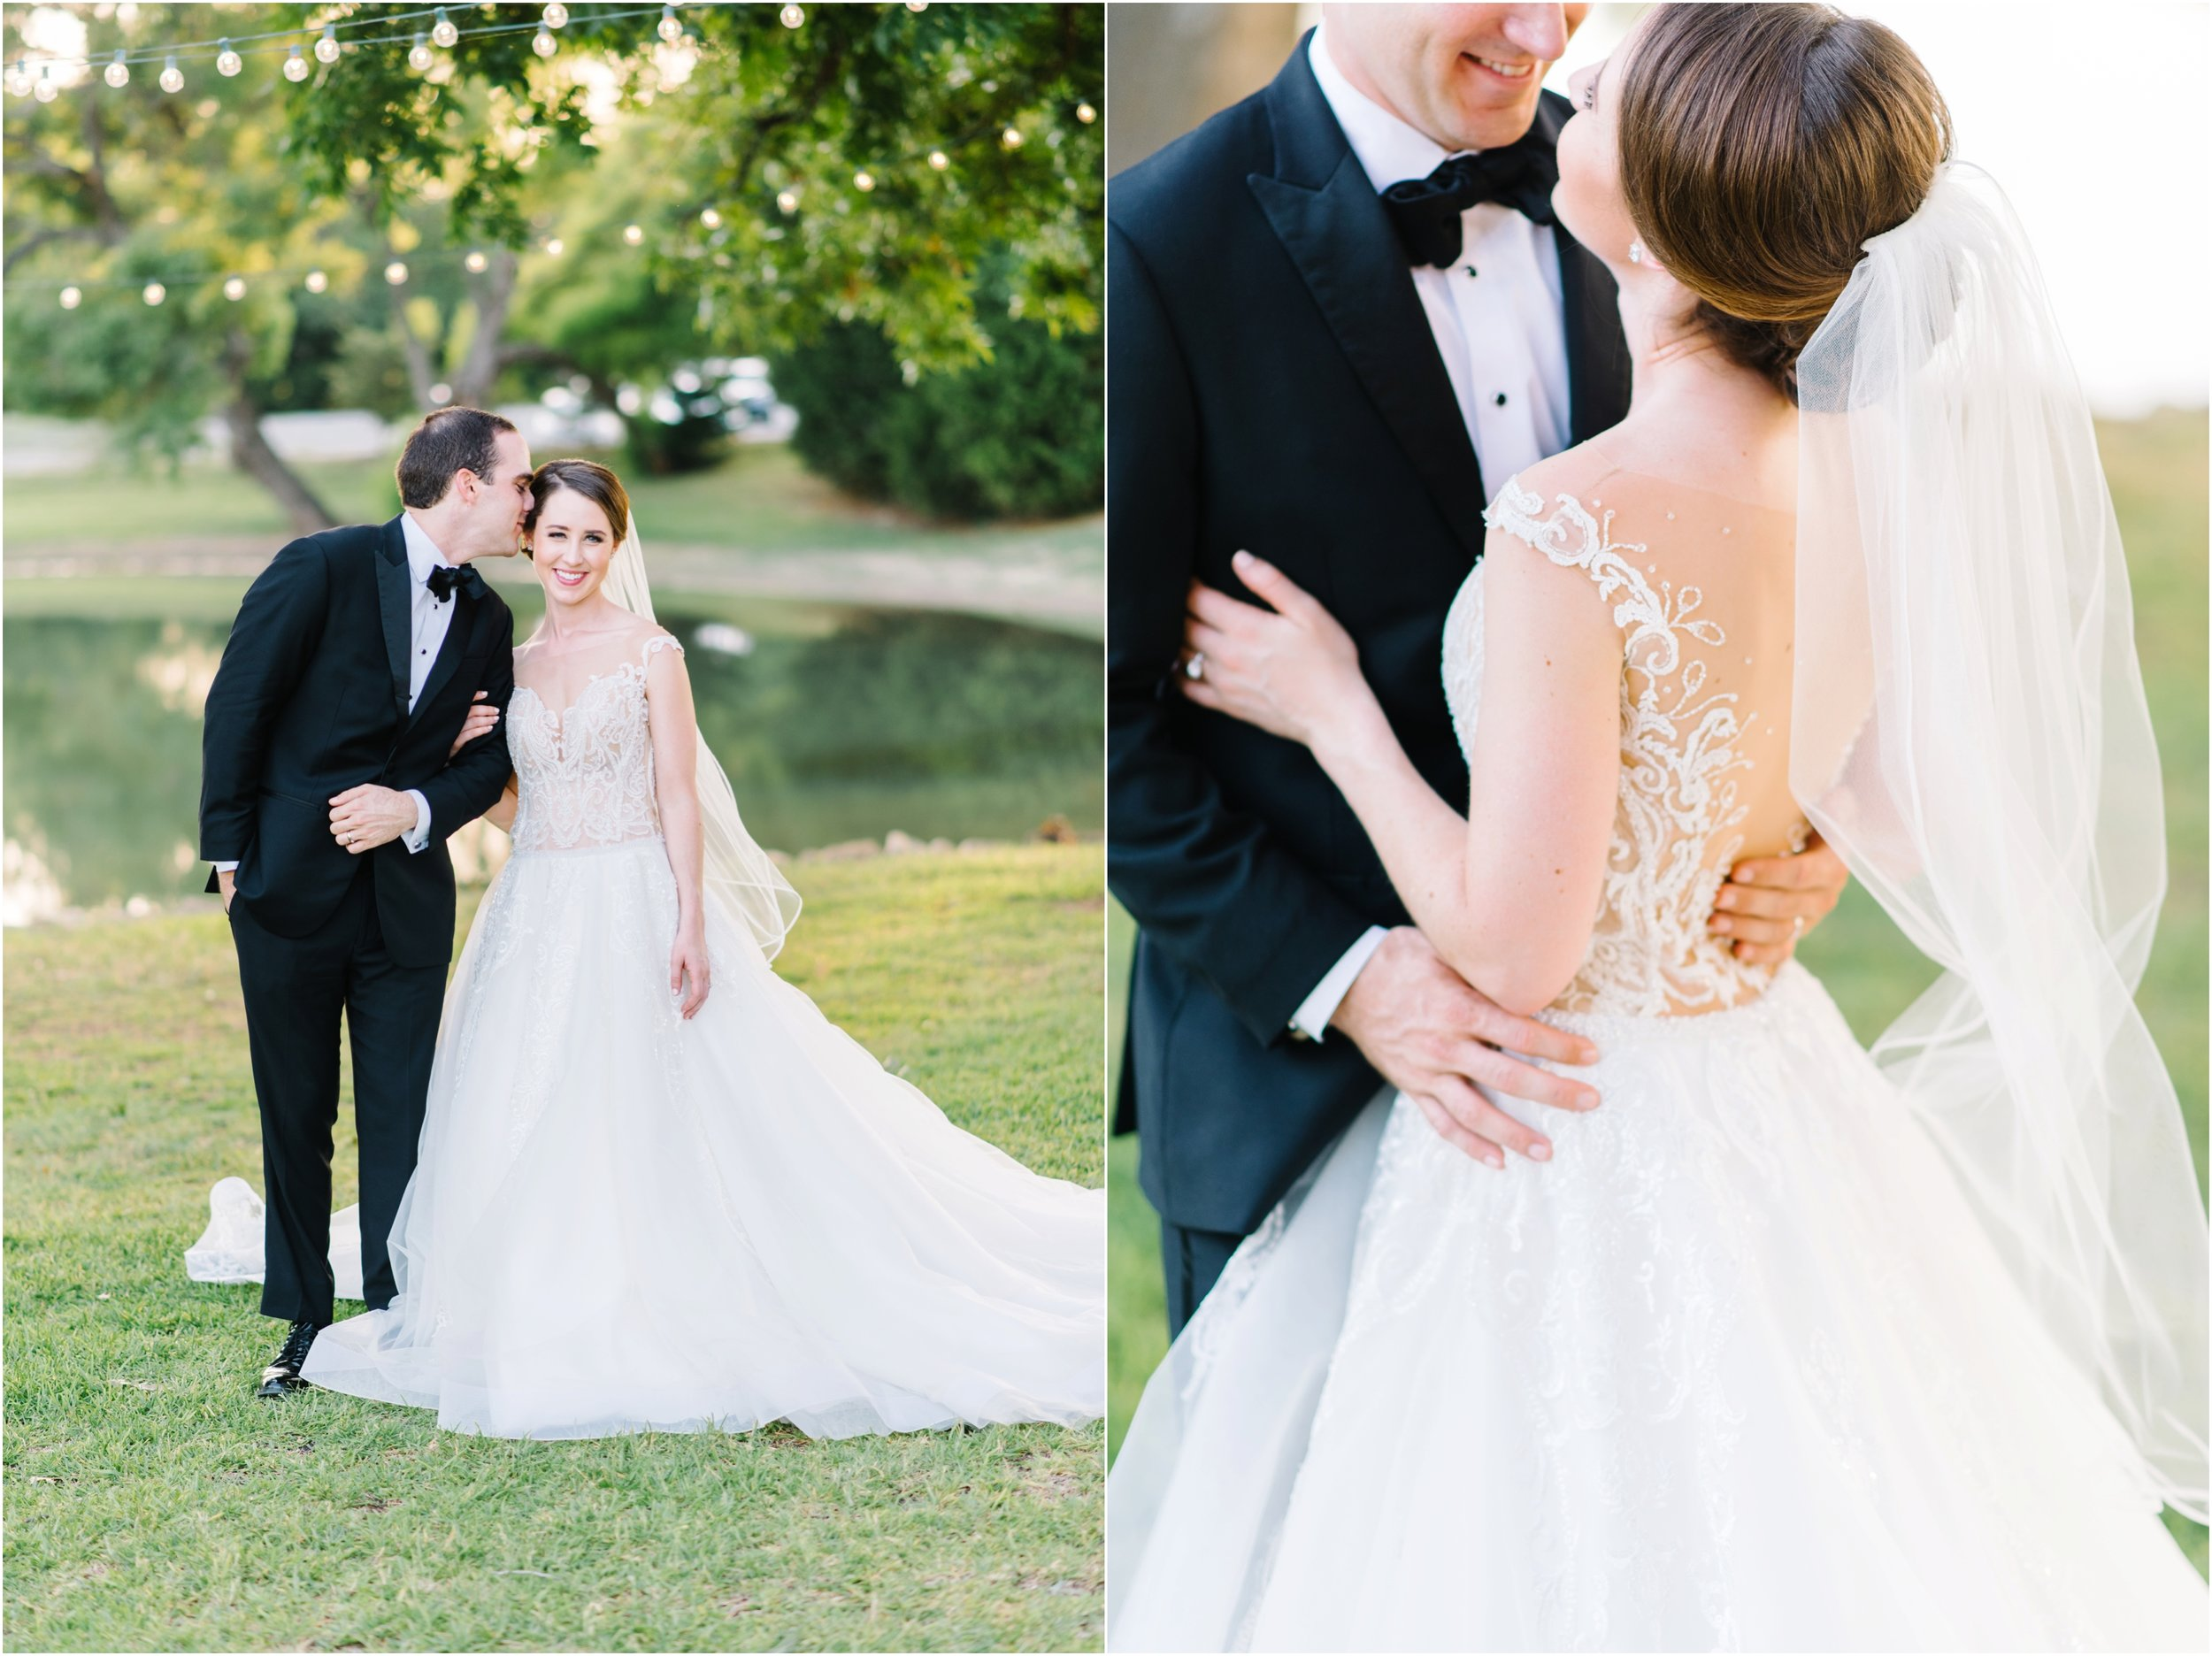 dallasweddingphotographer_fortworthweddingphotographer_texasweddingphotographer_mattandjulieweddings_whiterocklakewedding_KayleighClay_0037.jpg